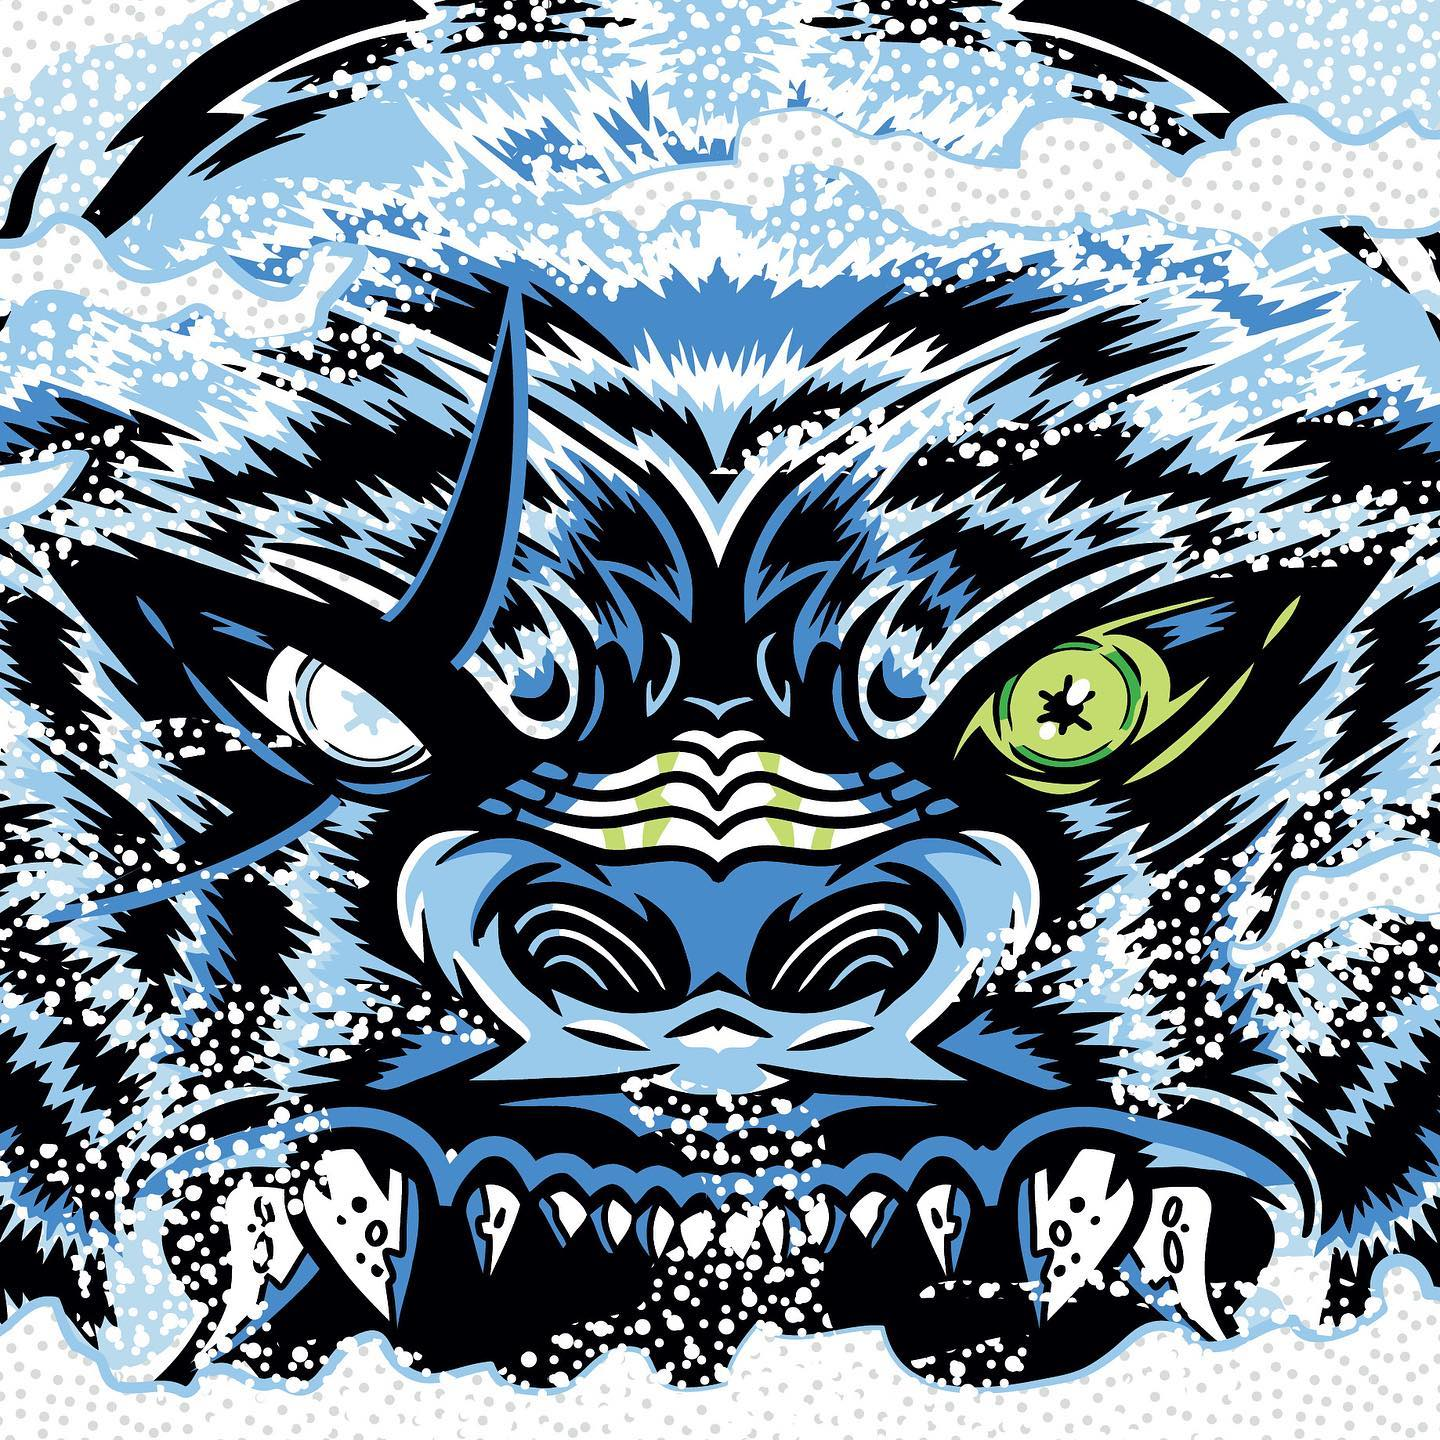 Graphic for an upcoming beer at Garage Band.  Looks like a the face of an angry blue dog.